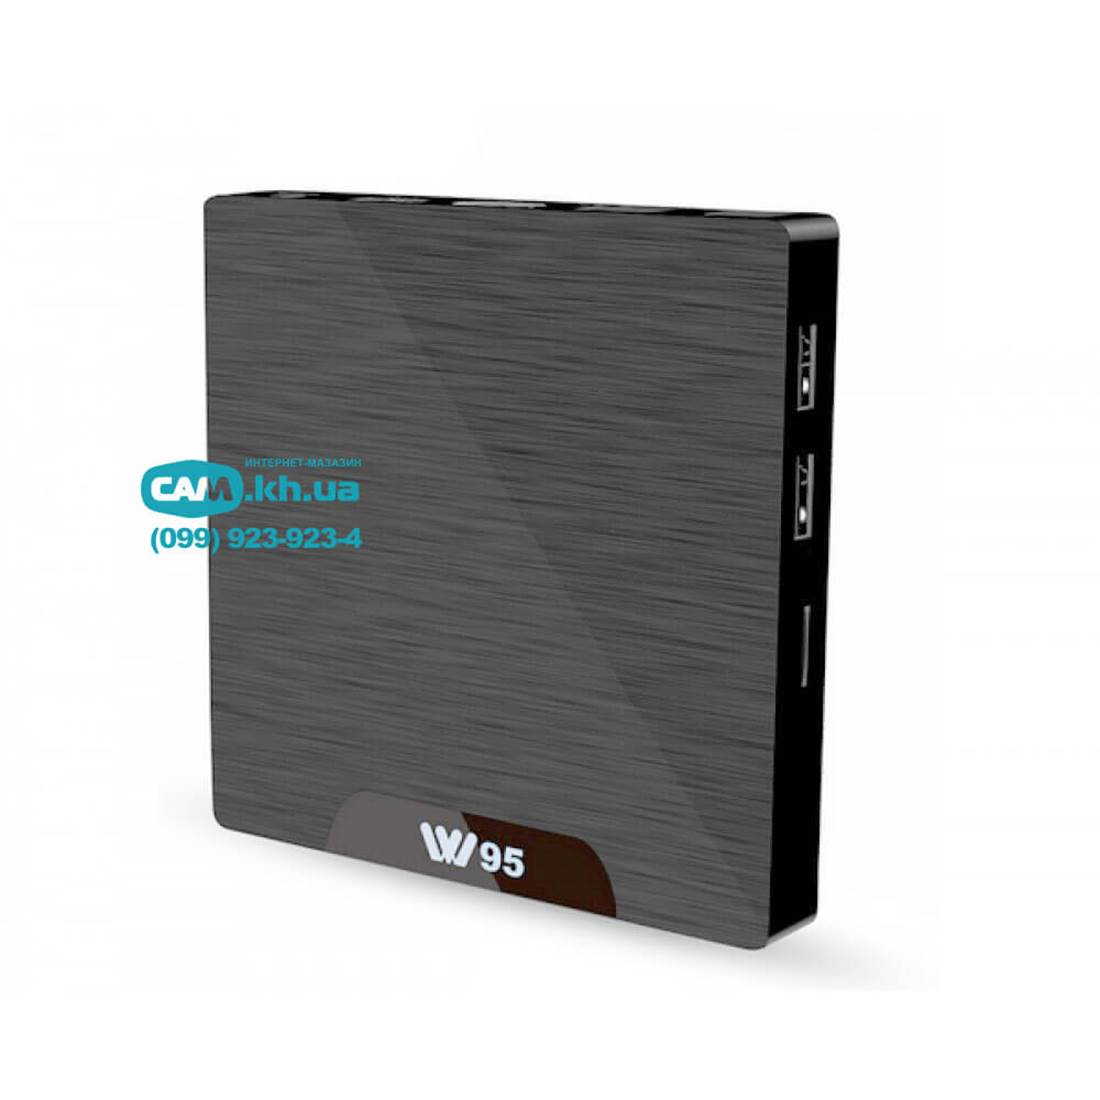 Купить TV Box Beelink W95